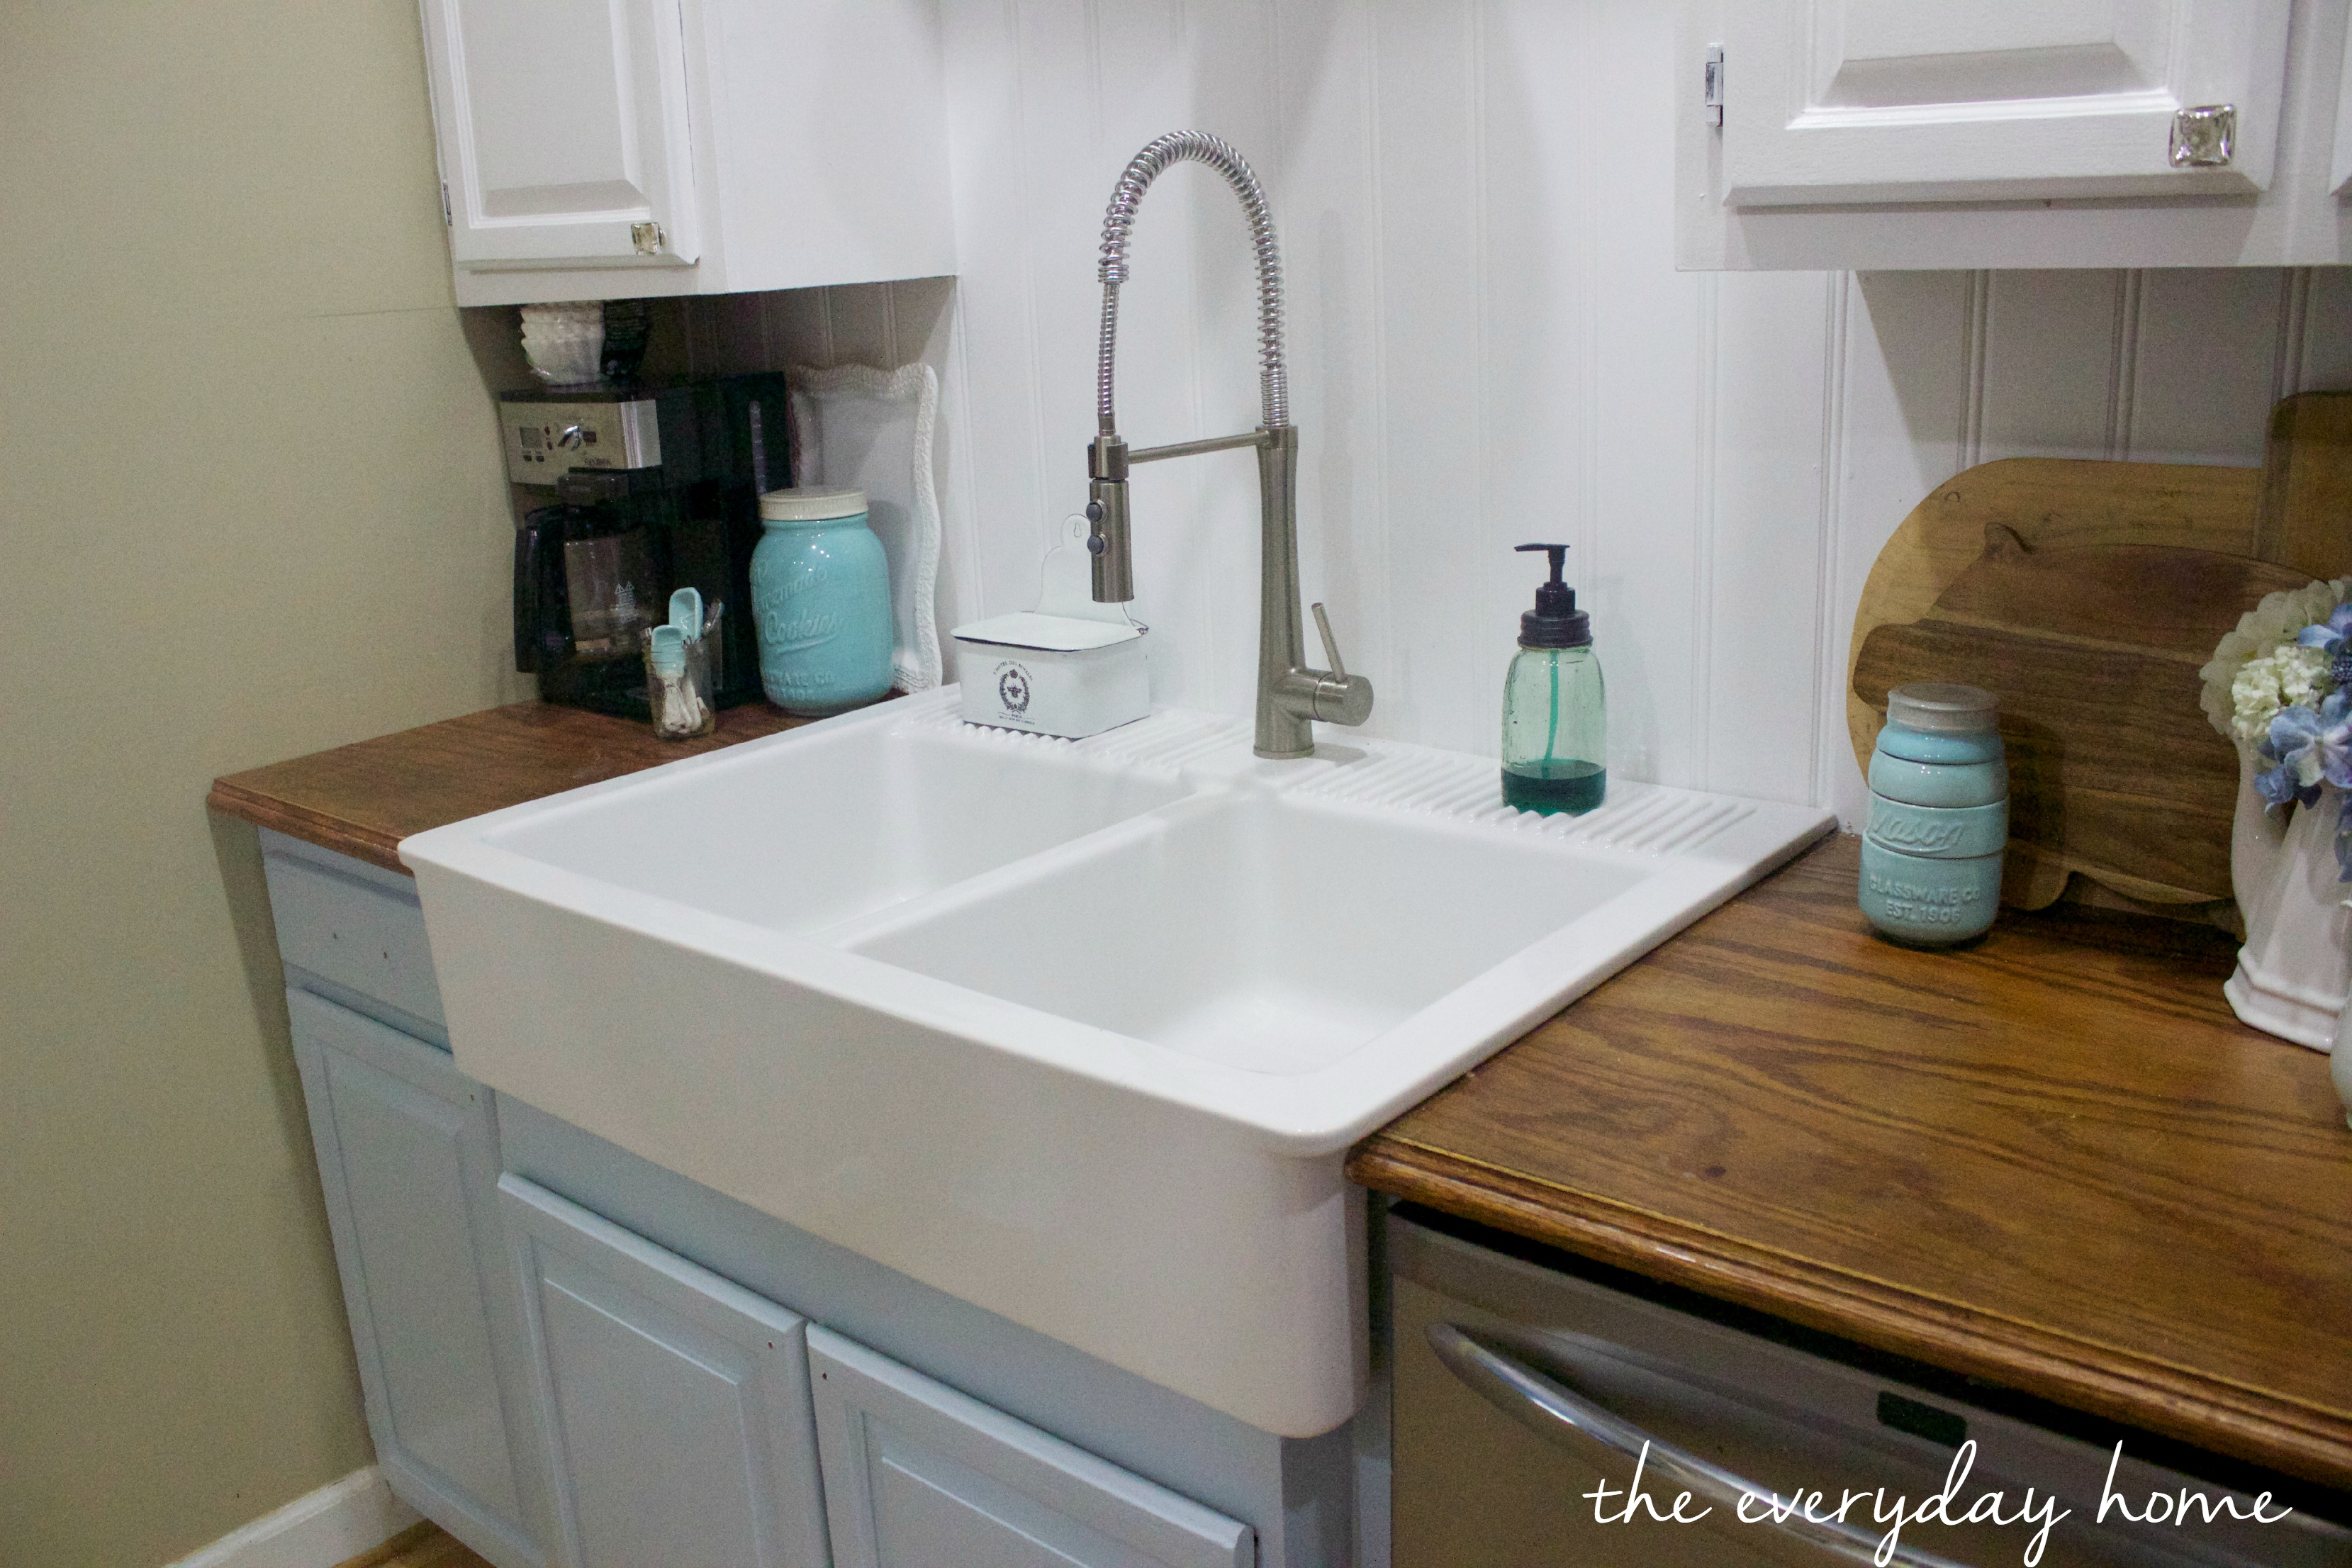 Farmhouse Kitchen Sinks Ikea ikea farmhouse sink - the everyday home